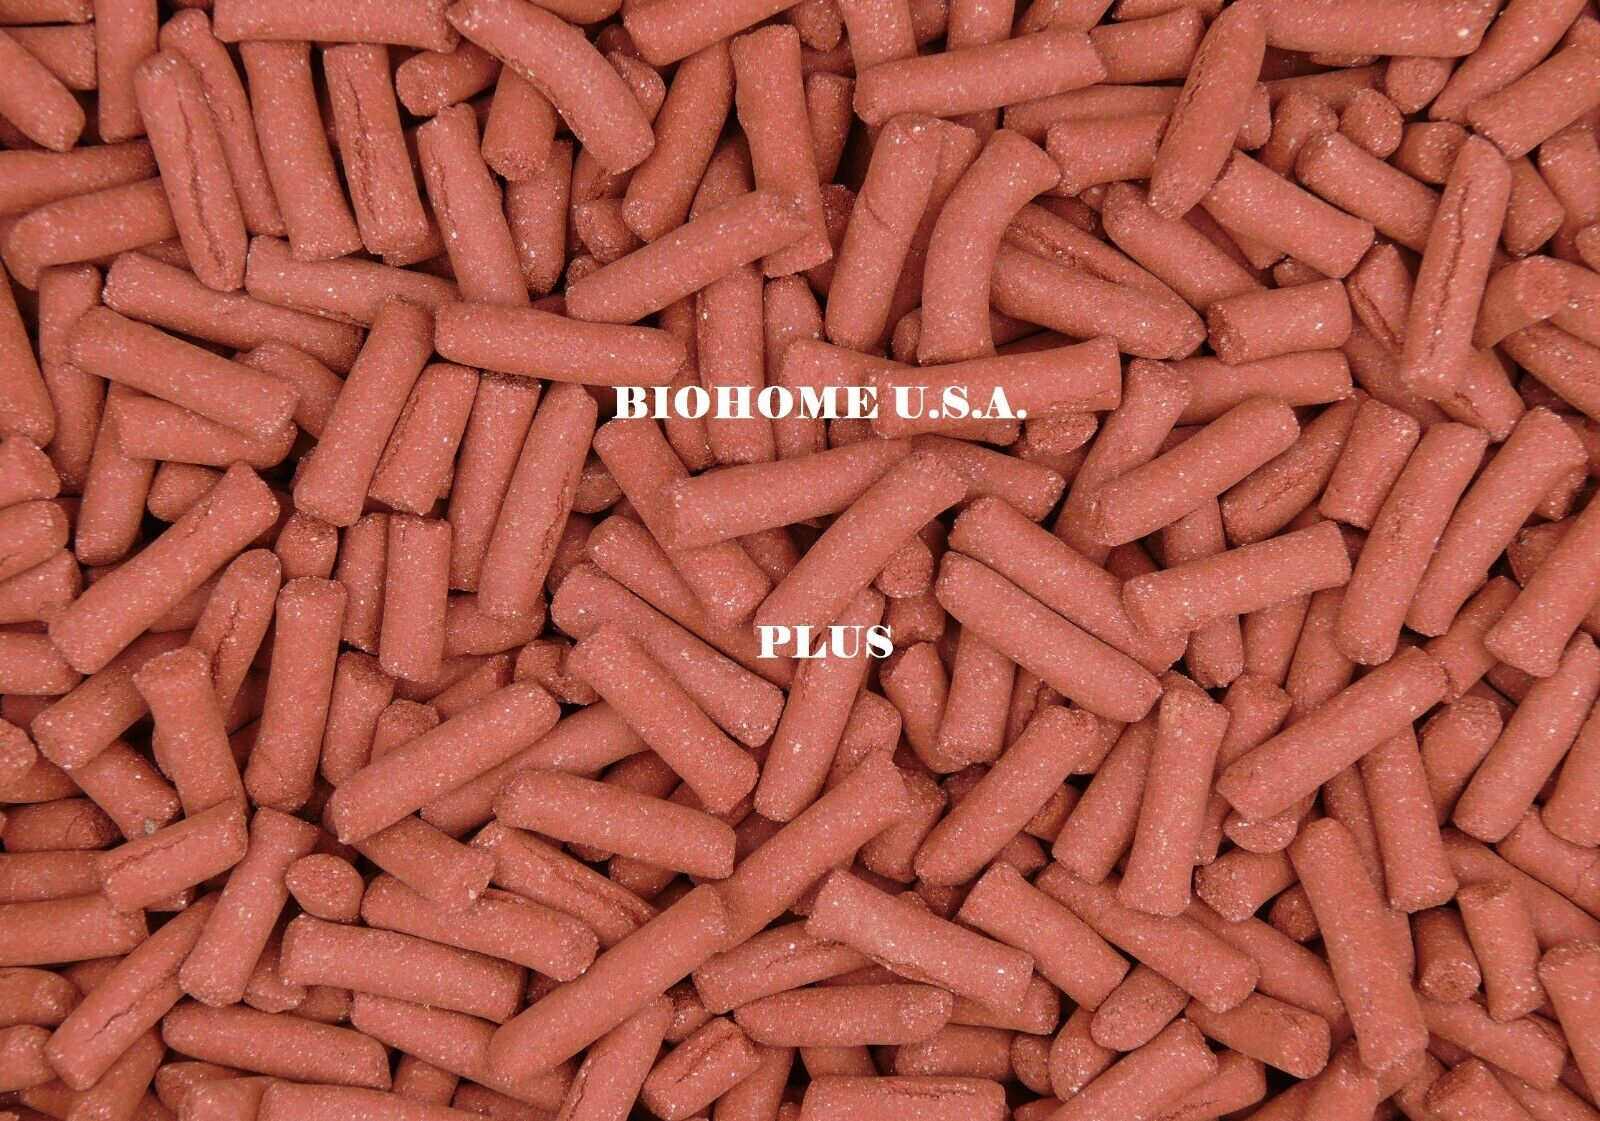 4 POUNDS BIOHOME PLUS FILTER MEDIA  SMALL rot   13.99 A POUND  US SELLER